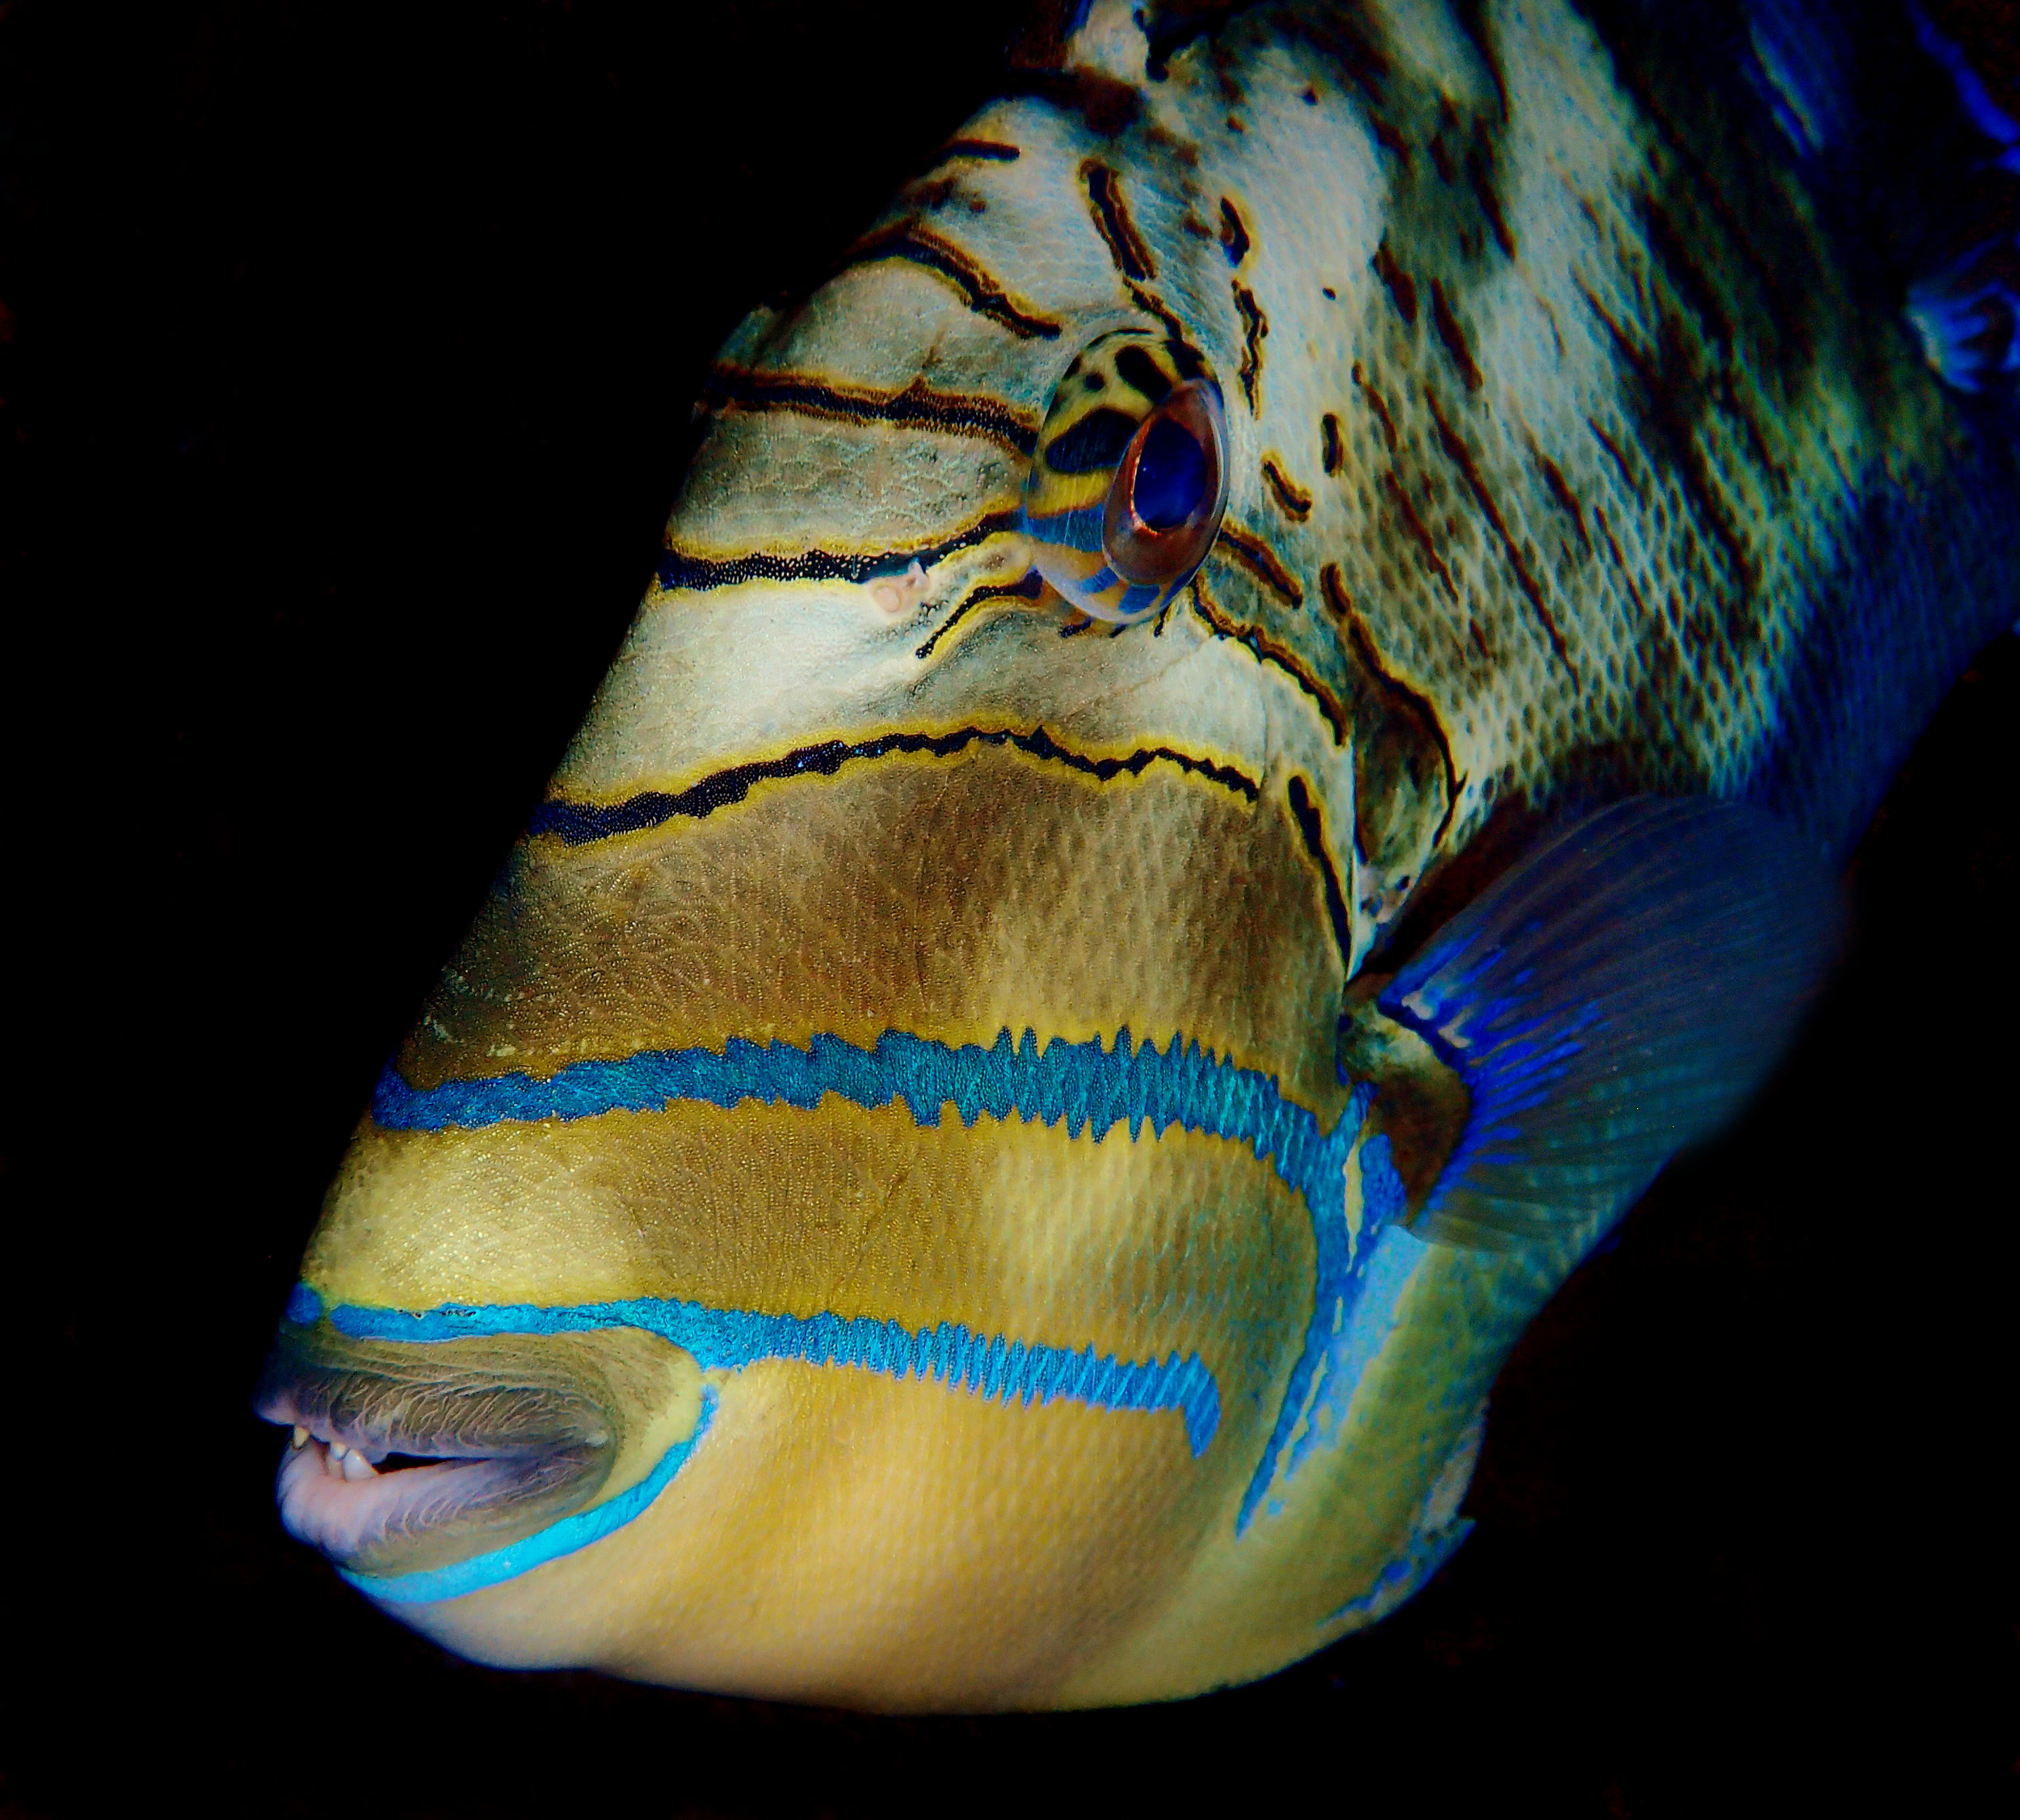 A curious queen triggerfish ( Balistes vetula ) swims by in the darkness.